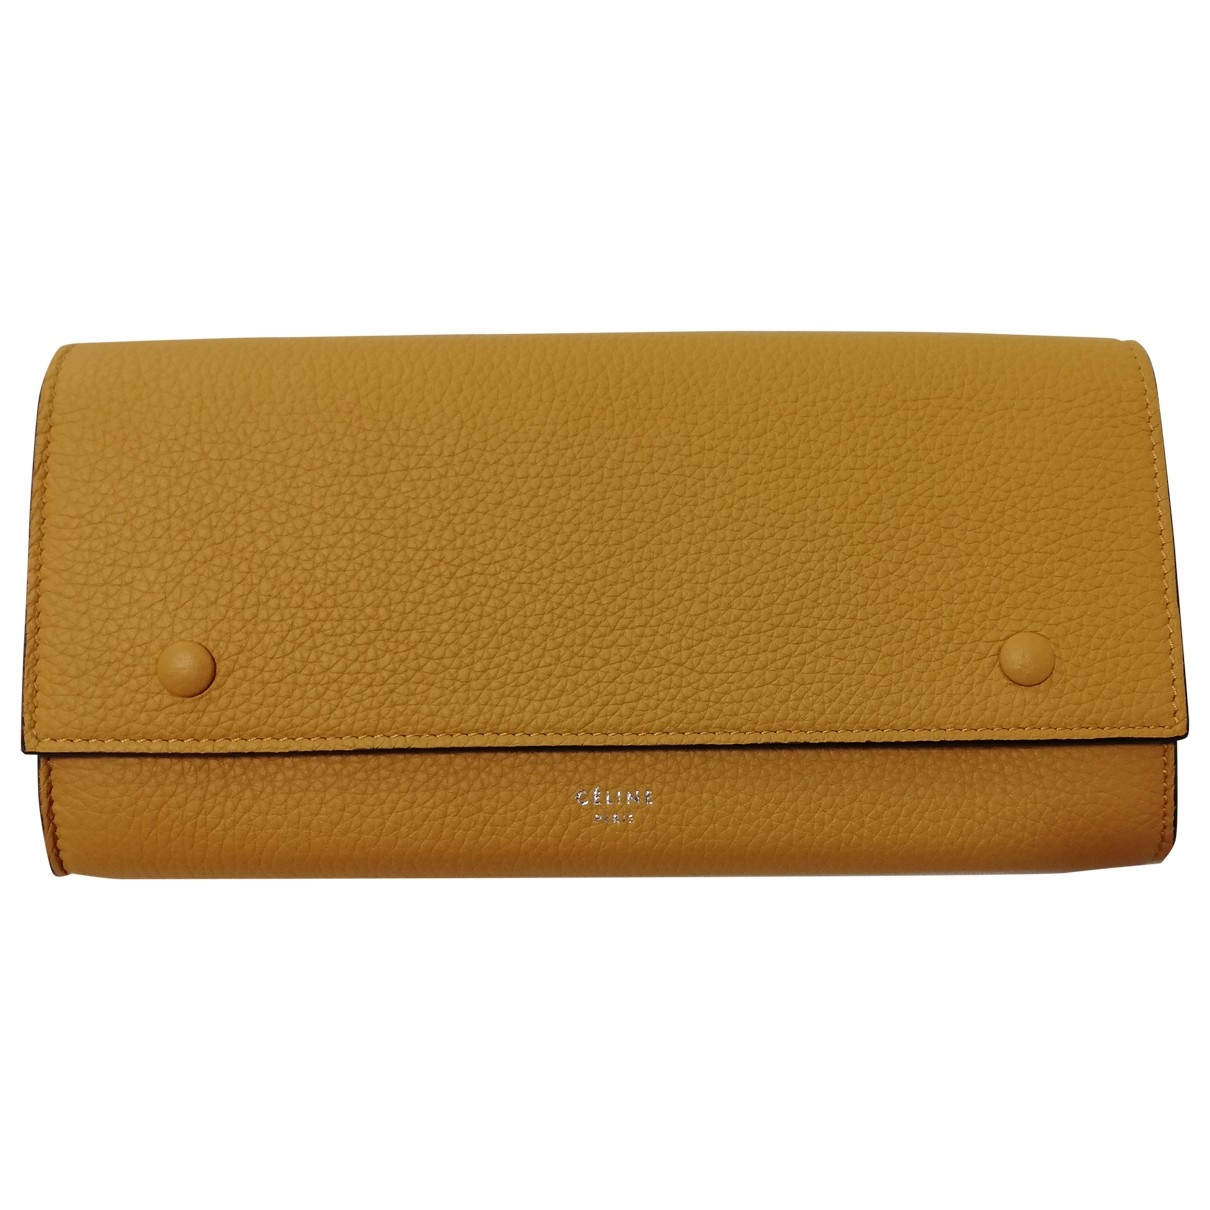 Celine \N Yellow Leather wallet for Women \N